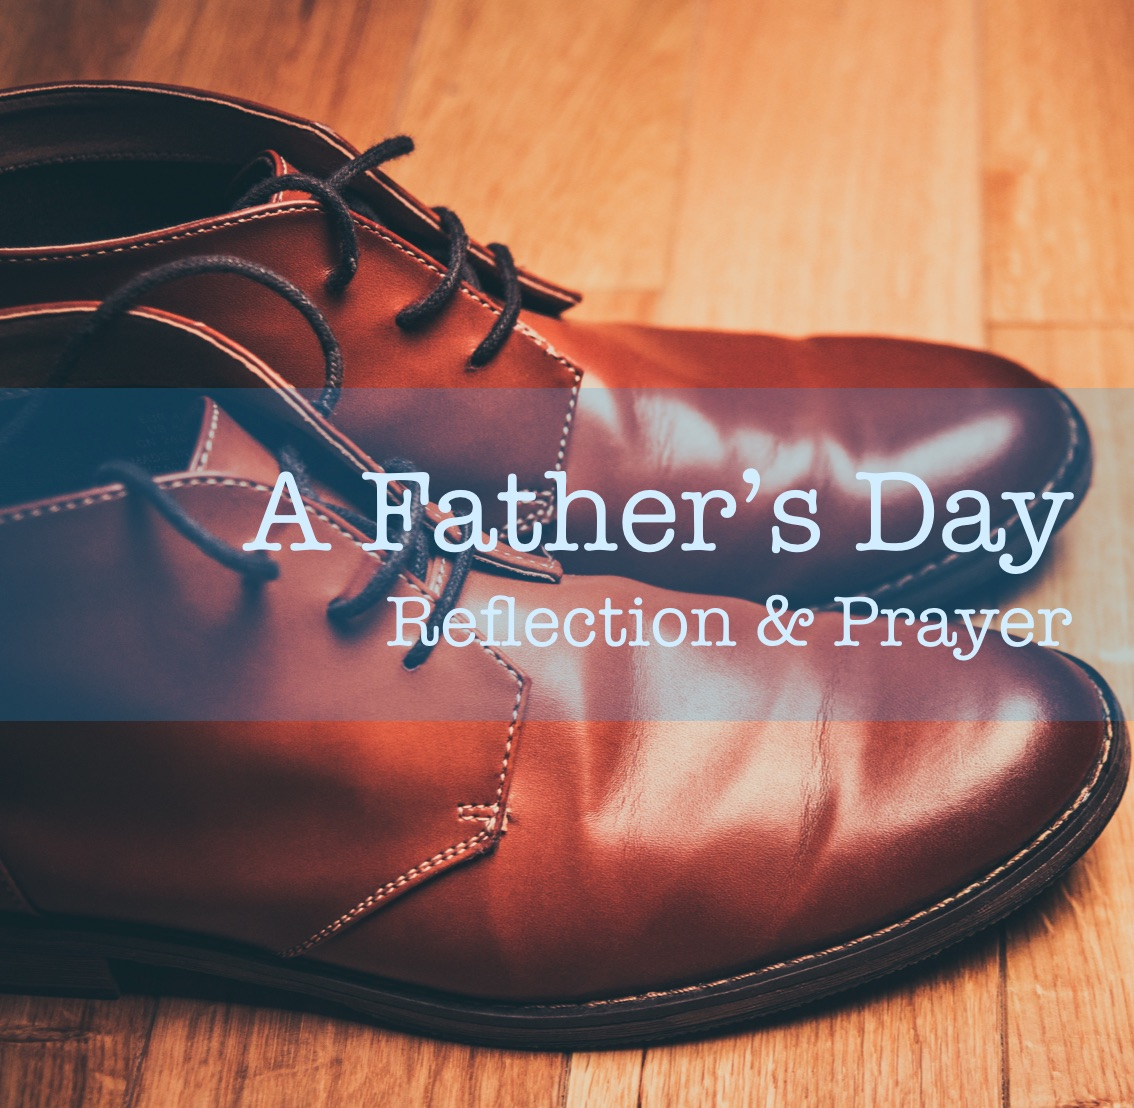 a father's day reflection and prayer.jpg